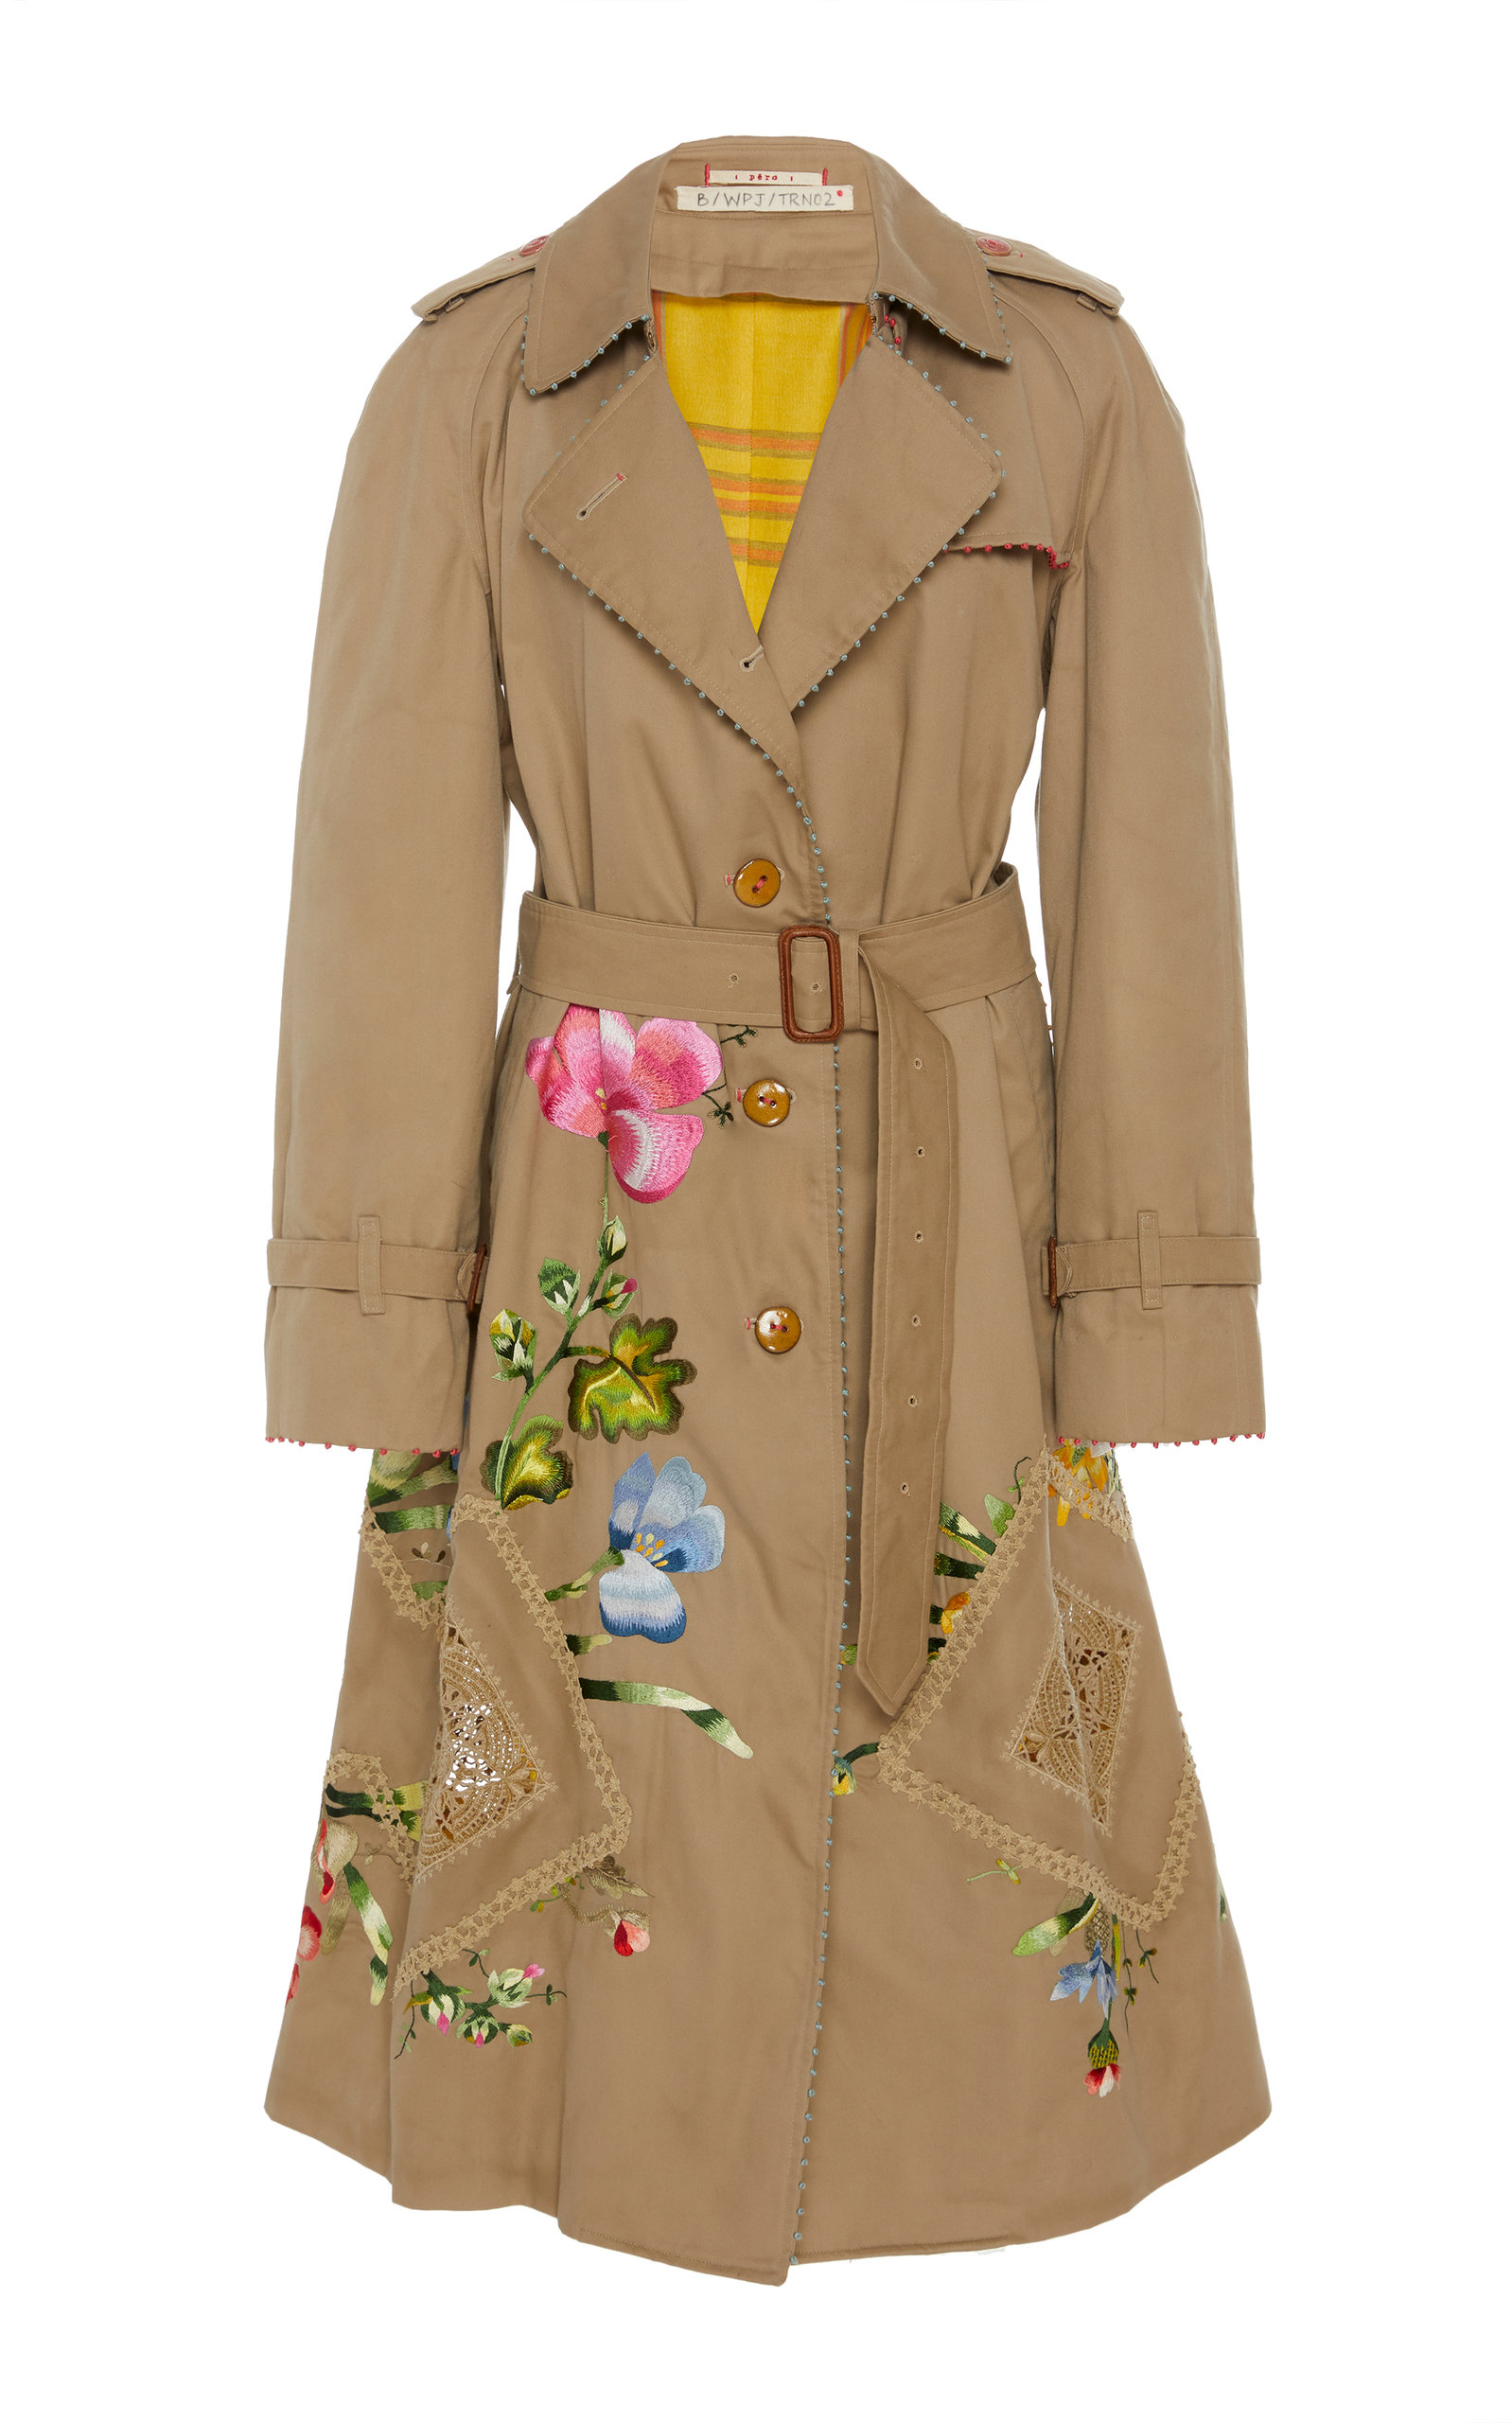 PÉRO Upcycled Cotton Trench Coat in Neutral